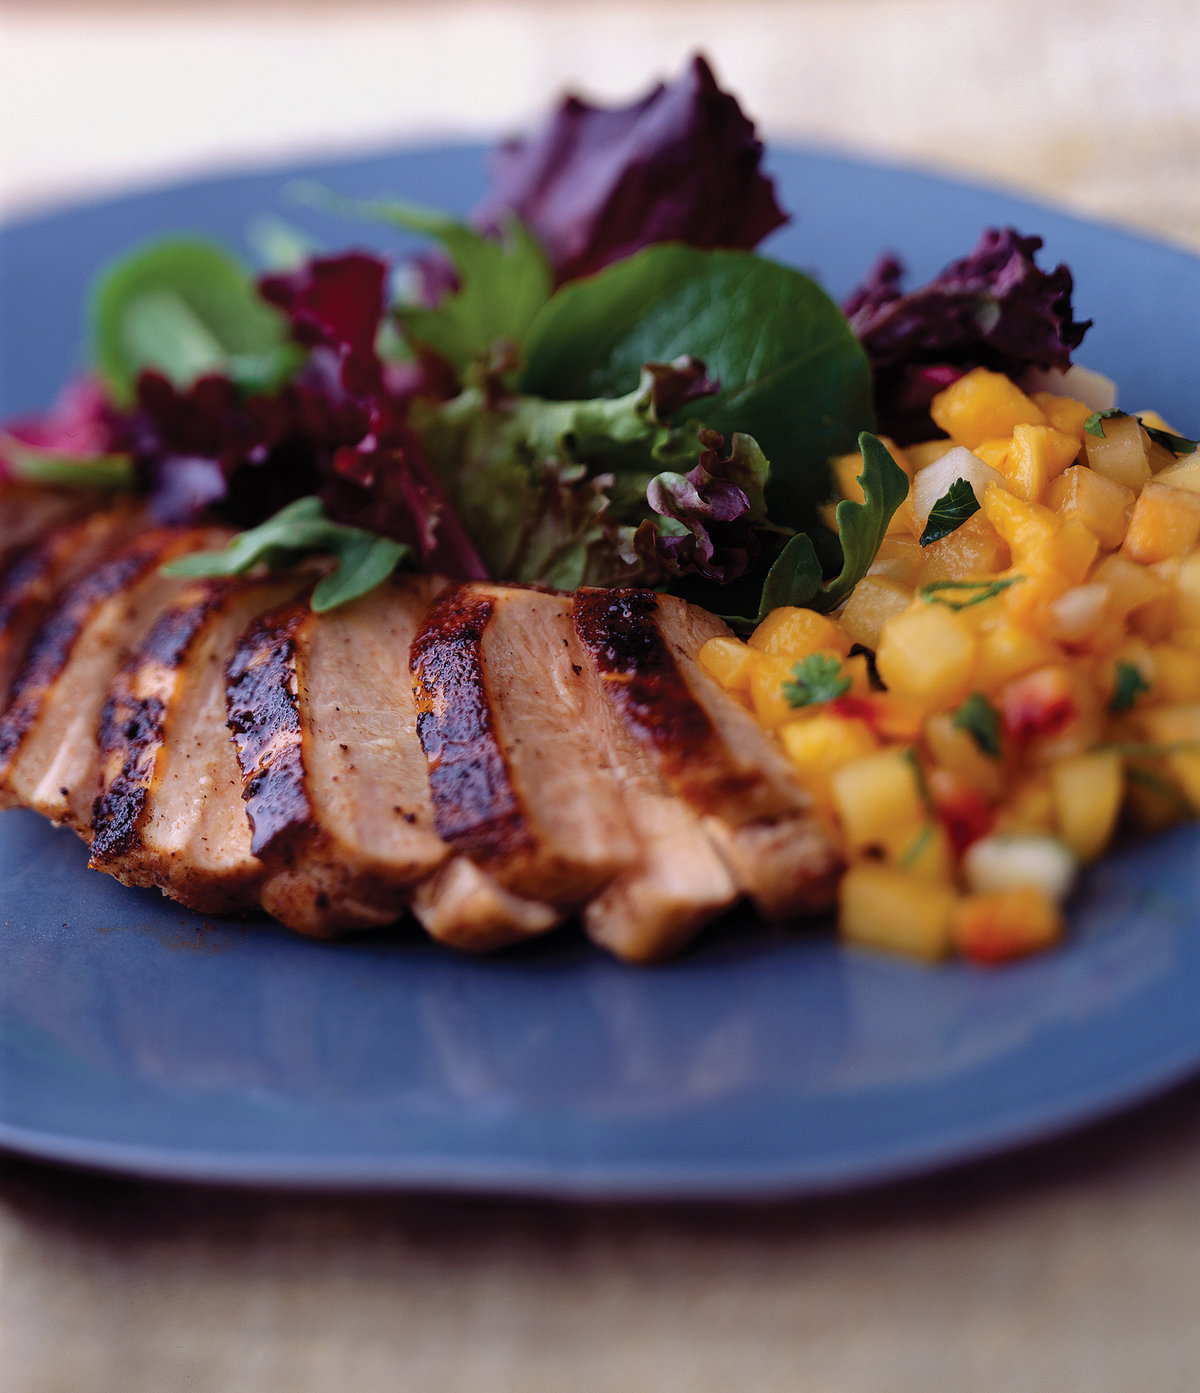 Blackened Chicken Breast with Fruit Salsa & Greens